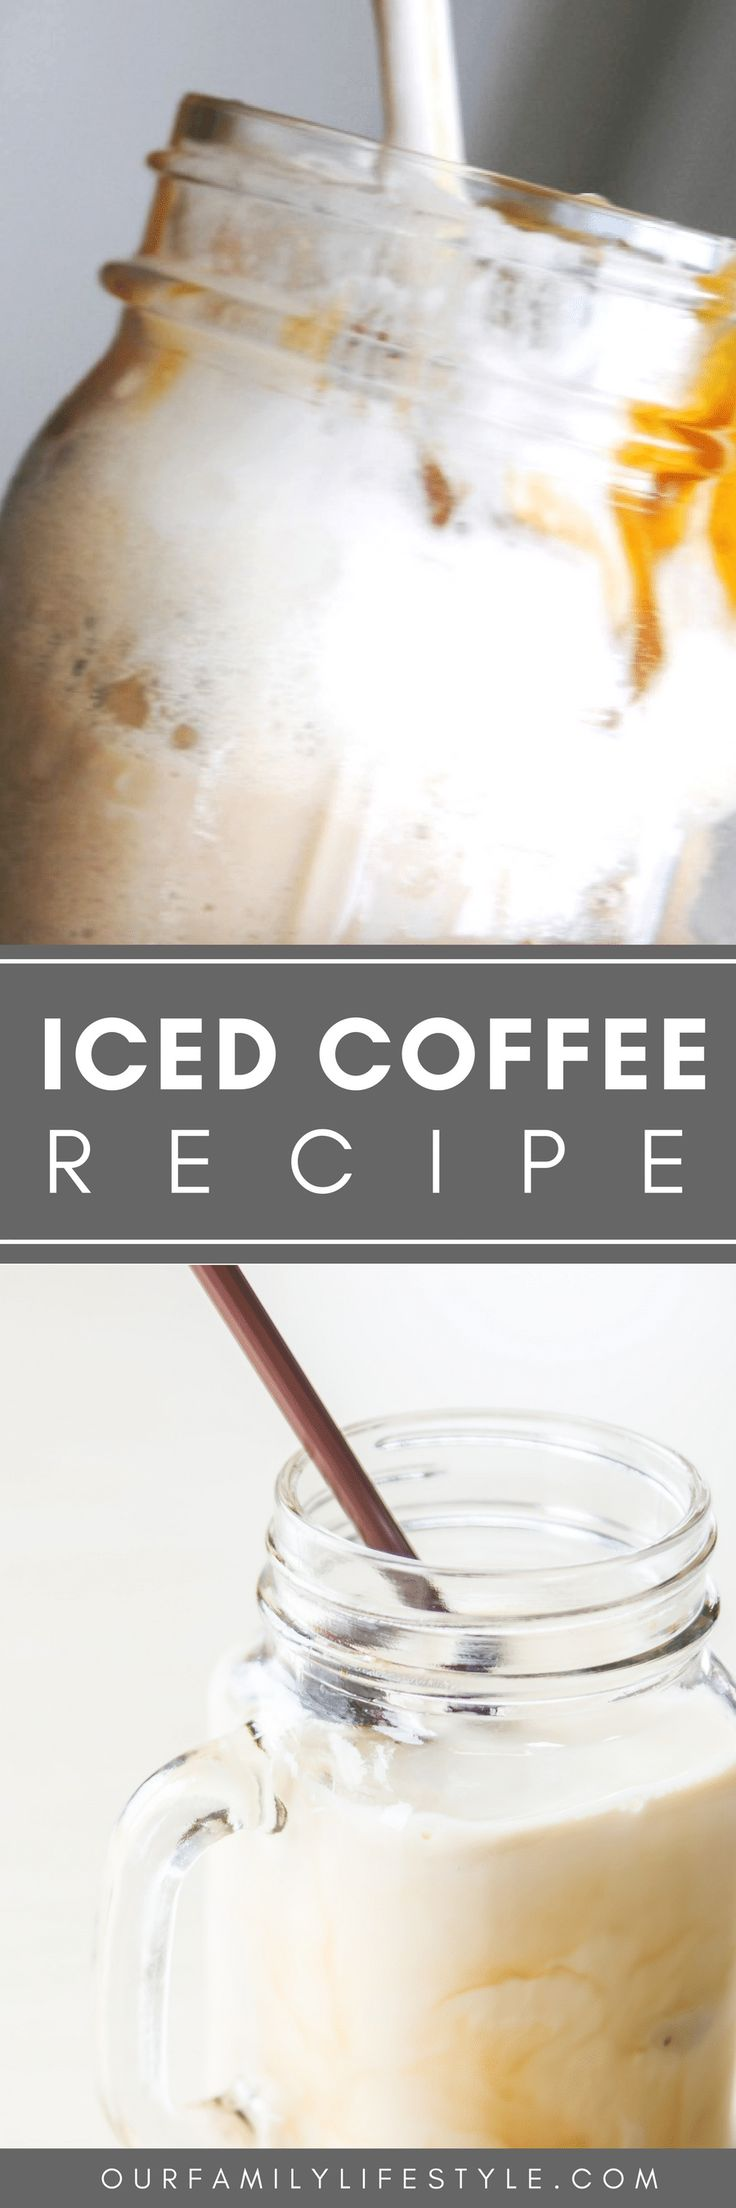 Just because it gets warm doesn't mean that we can't still enjoy our coffee! That simply means we move onto to simple homemade iced coffee recipes and fun in the sun.